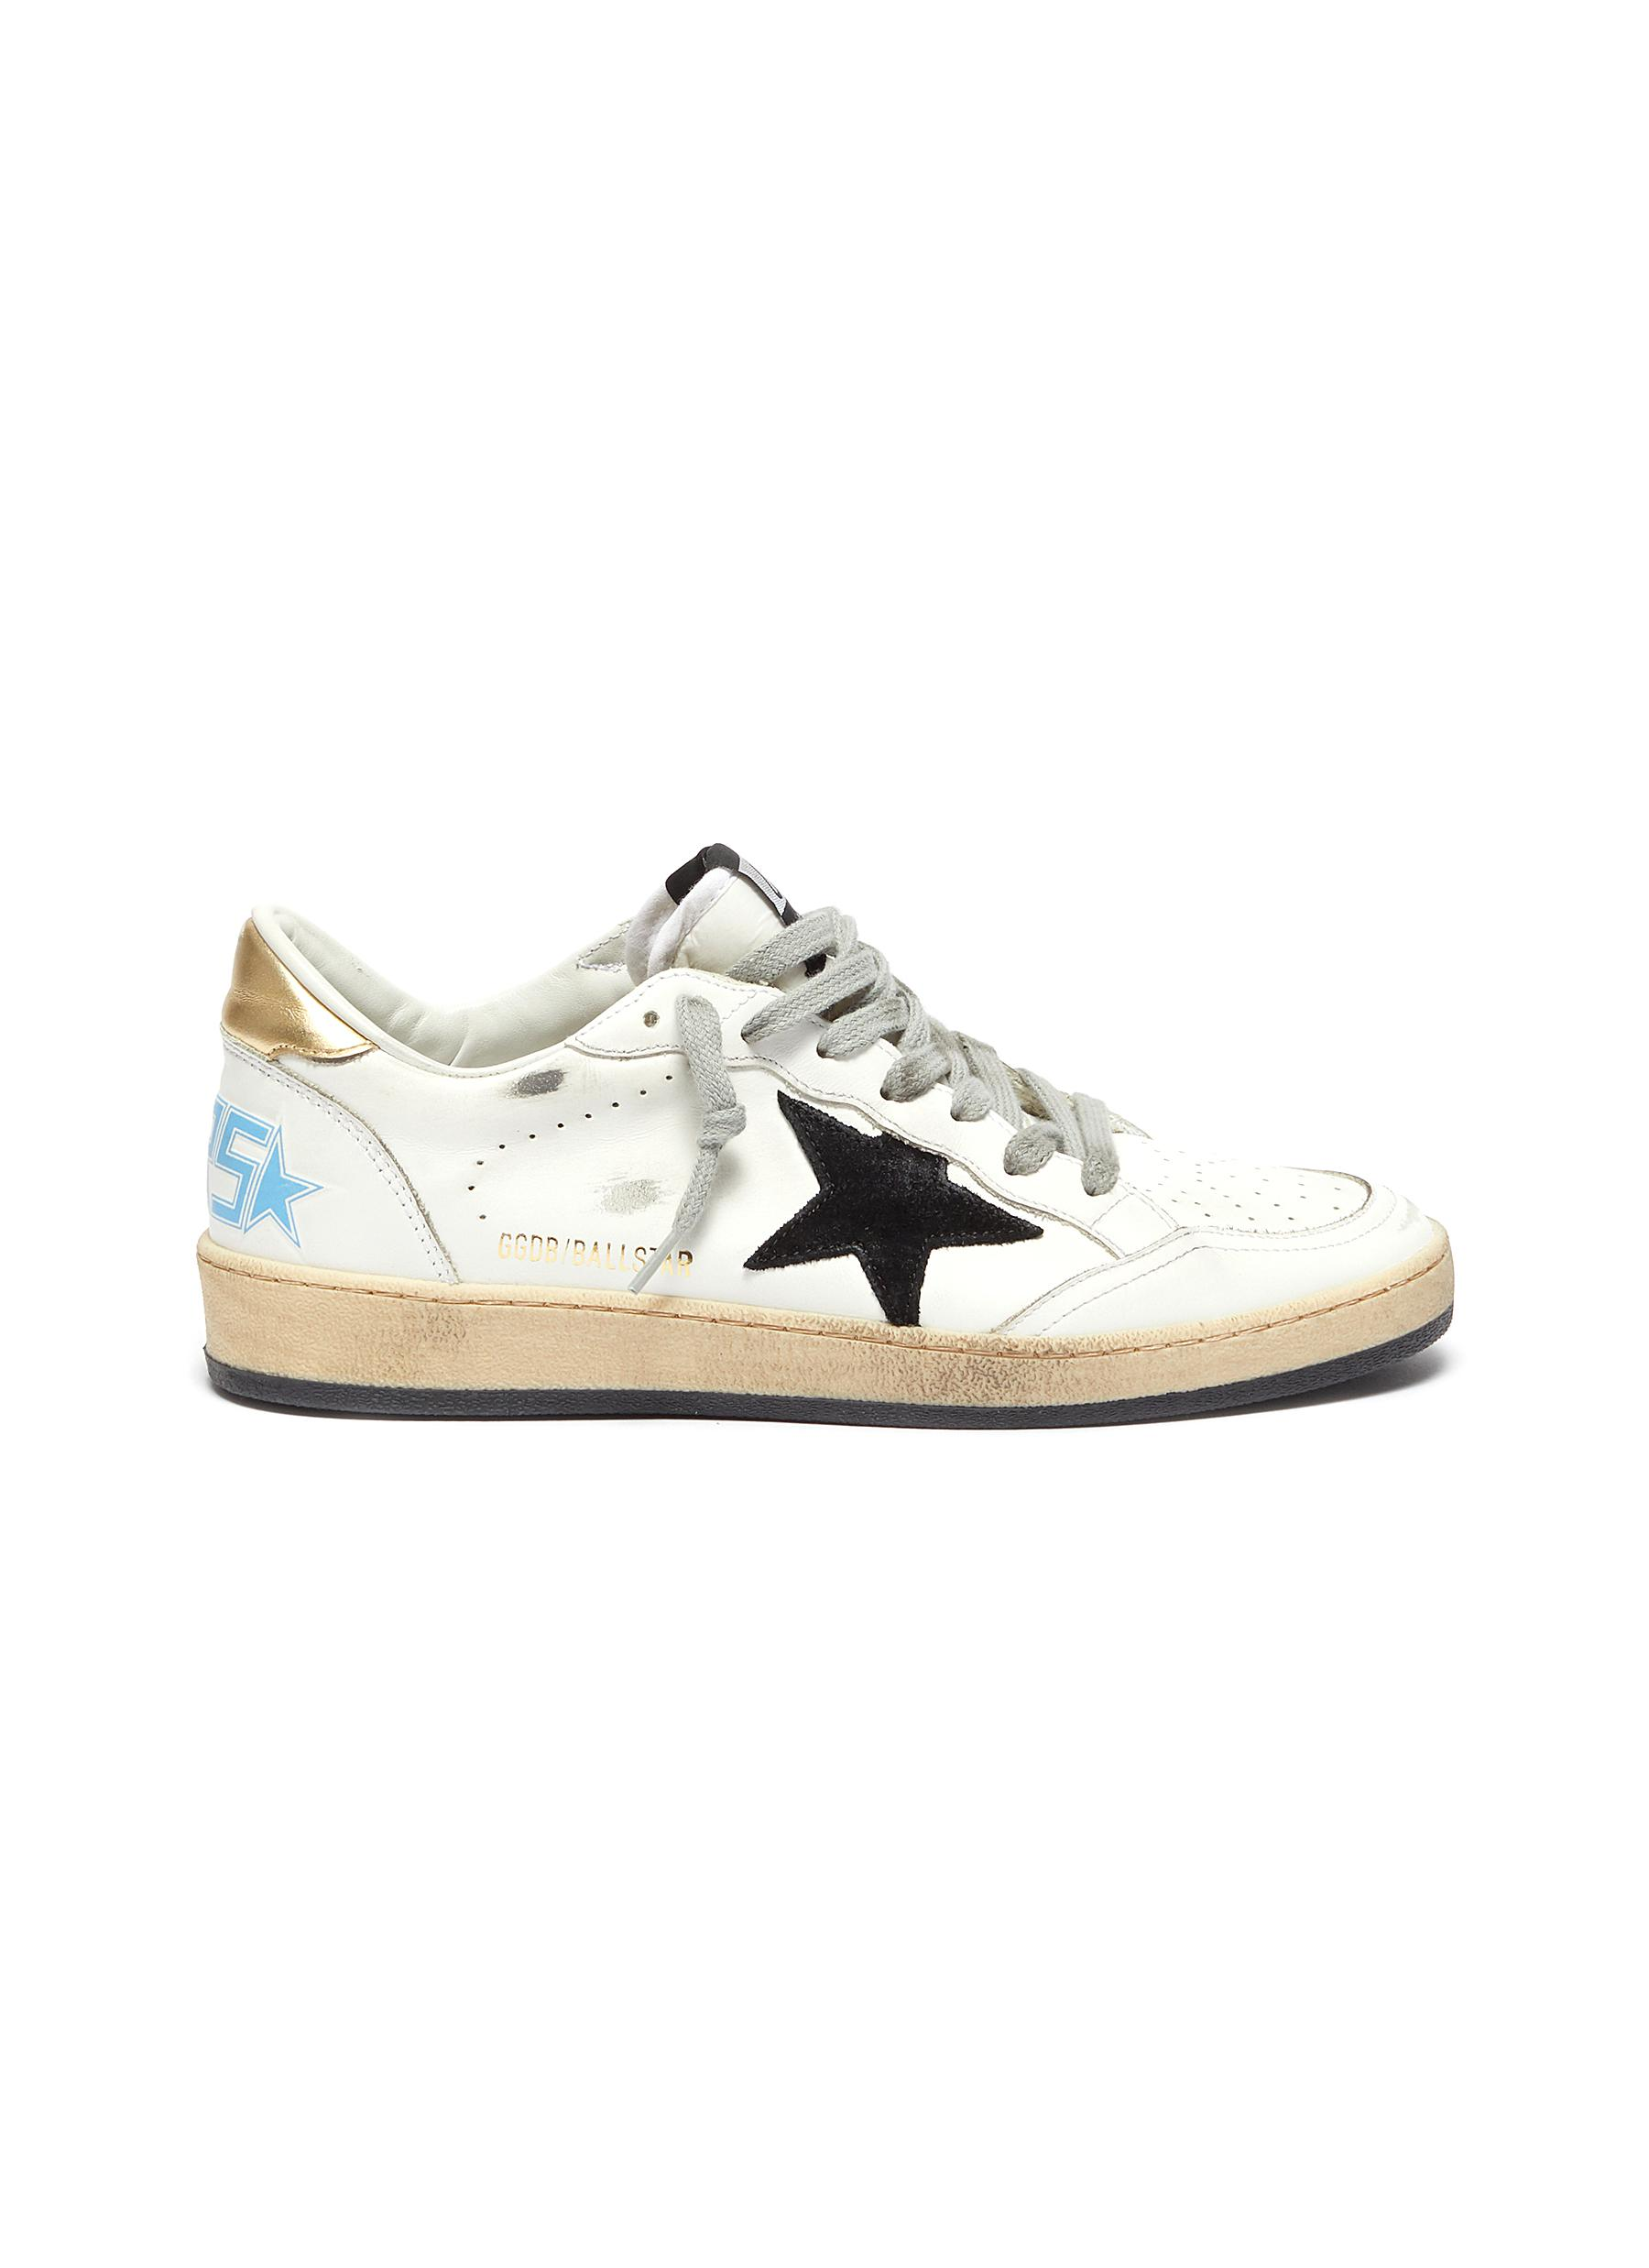 'Ball Star' Logo Print Distressed Leather Sneakers